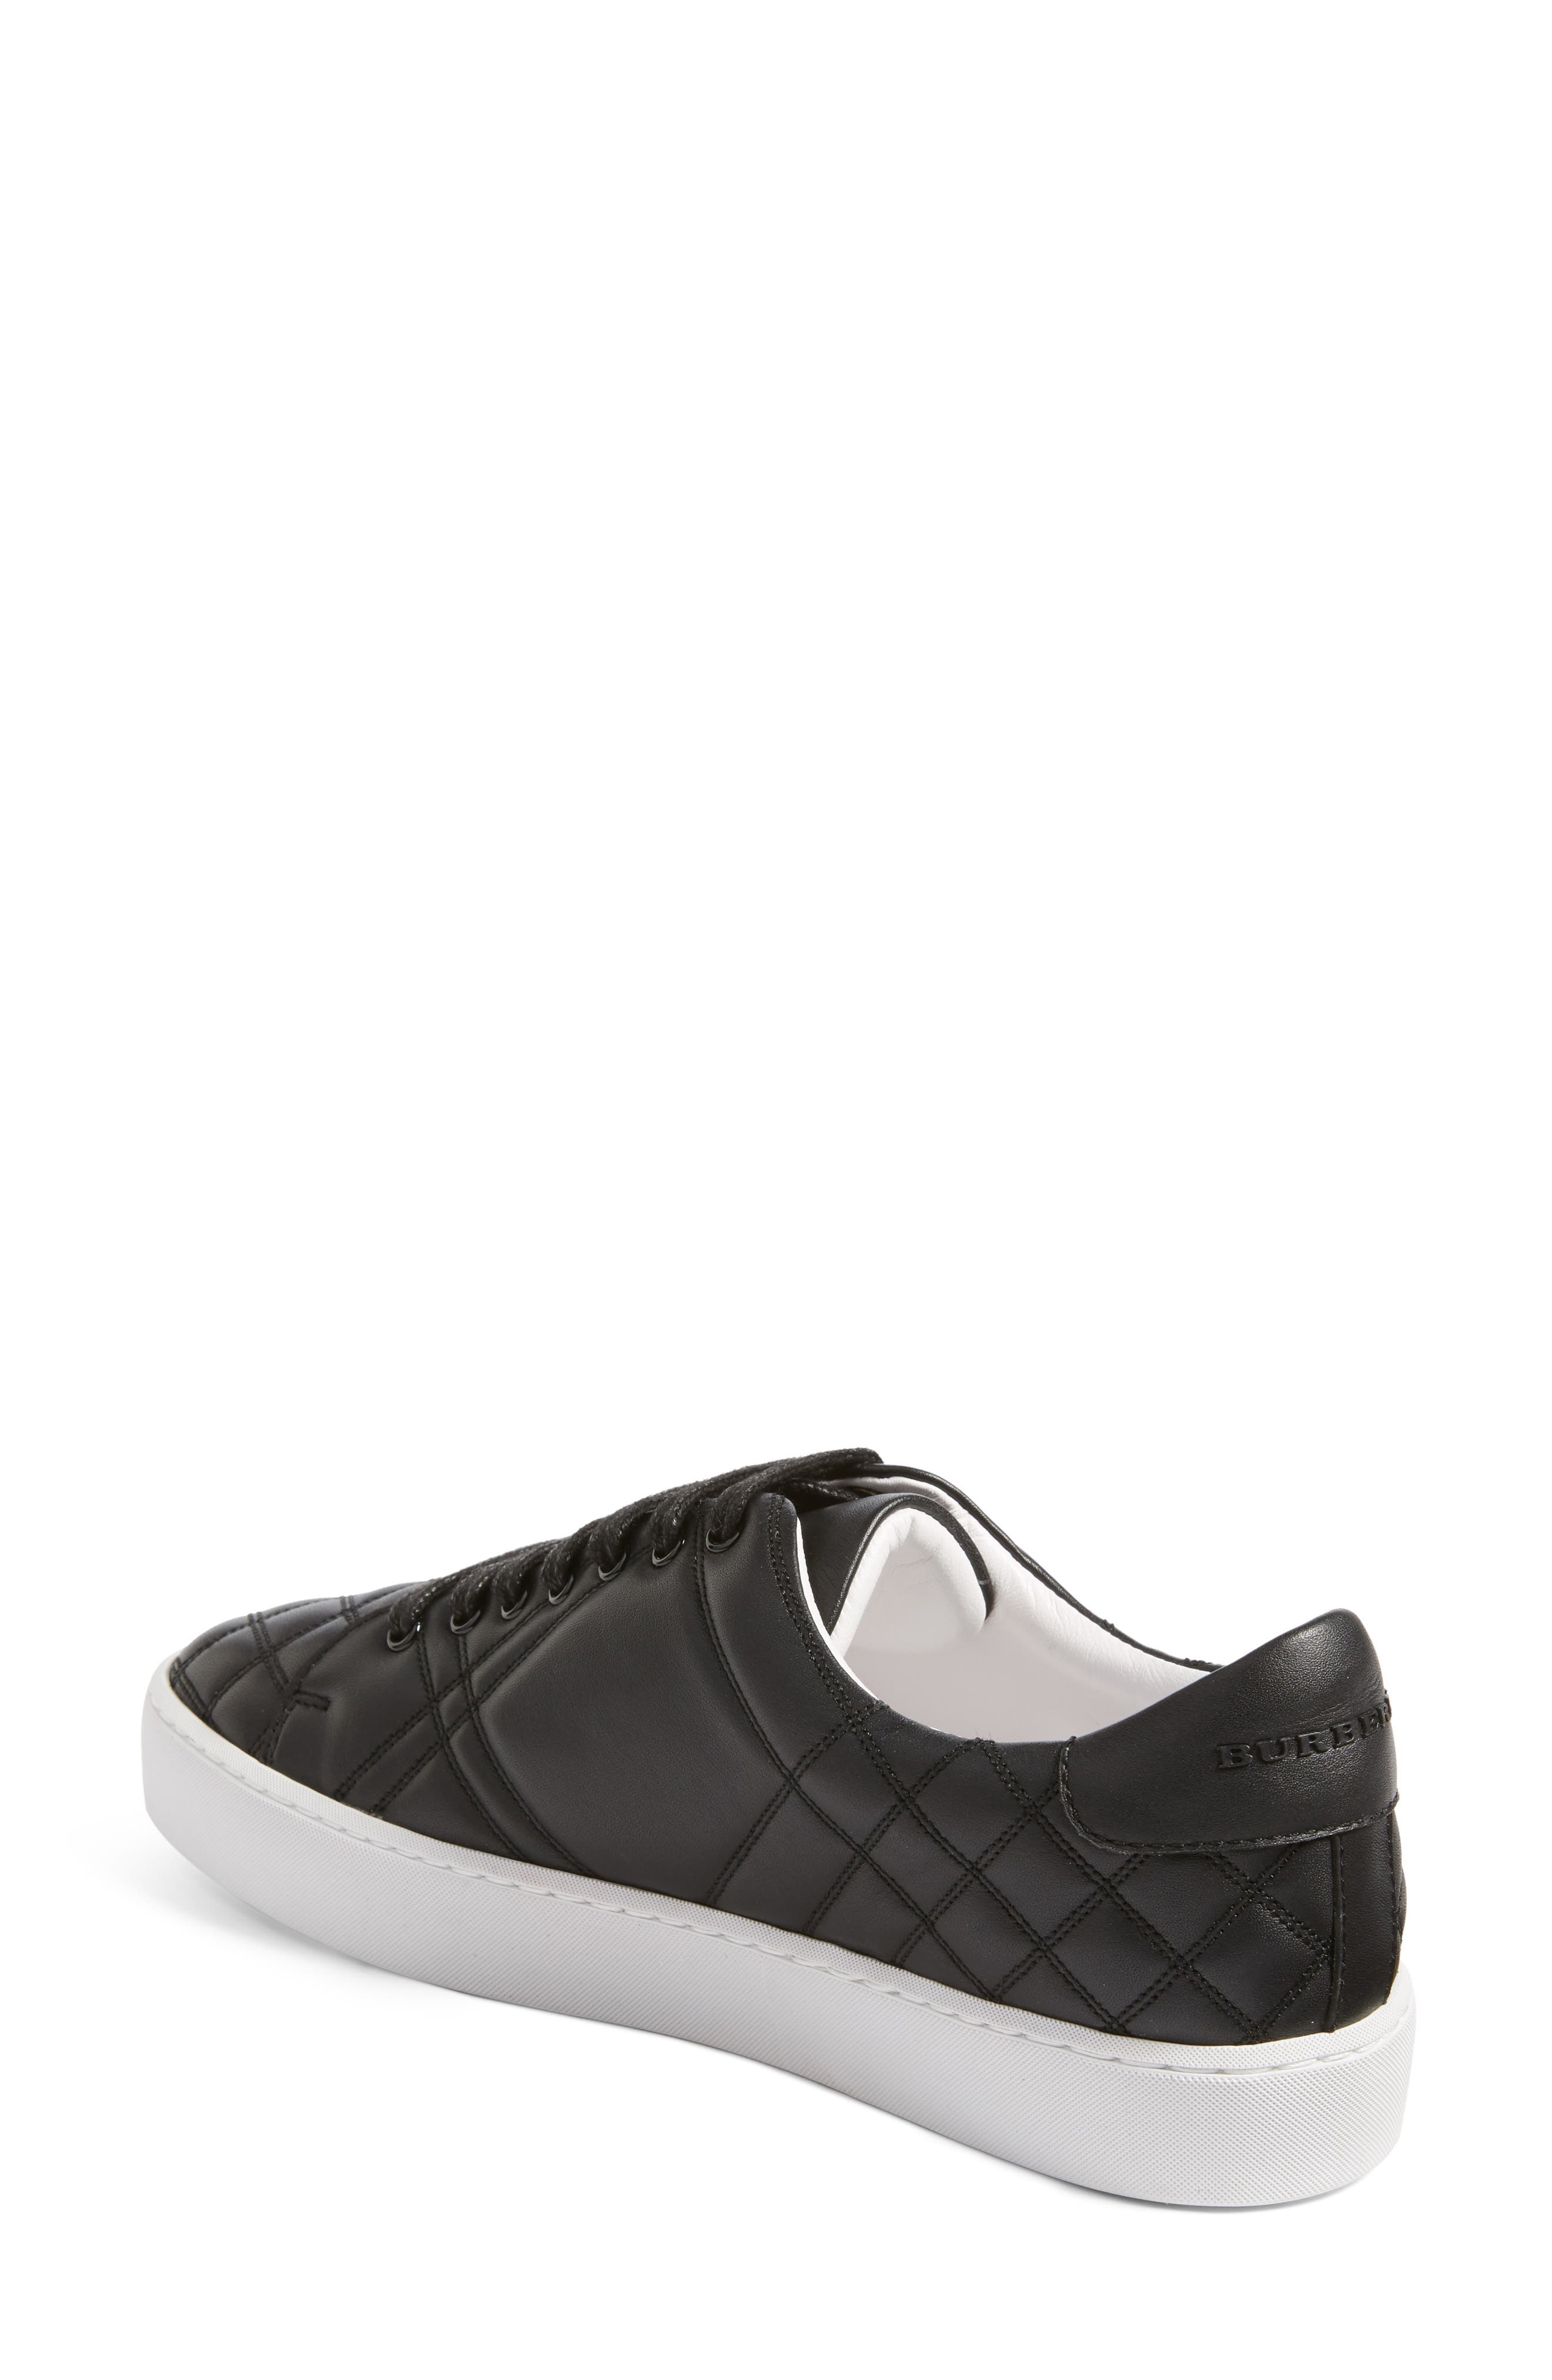 Alternate Image 2  - Burberry Check Quilted Leather Sneaker (Women)